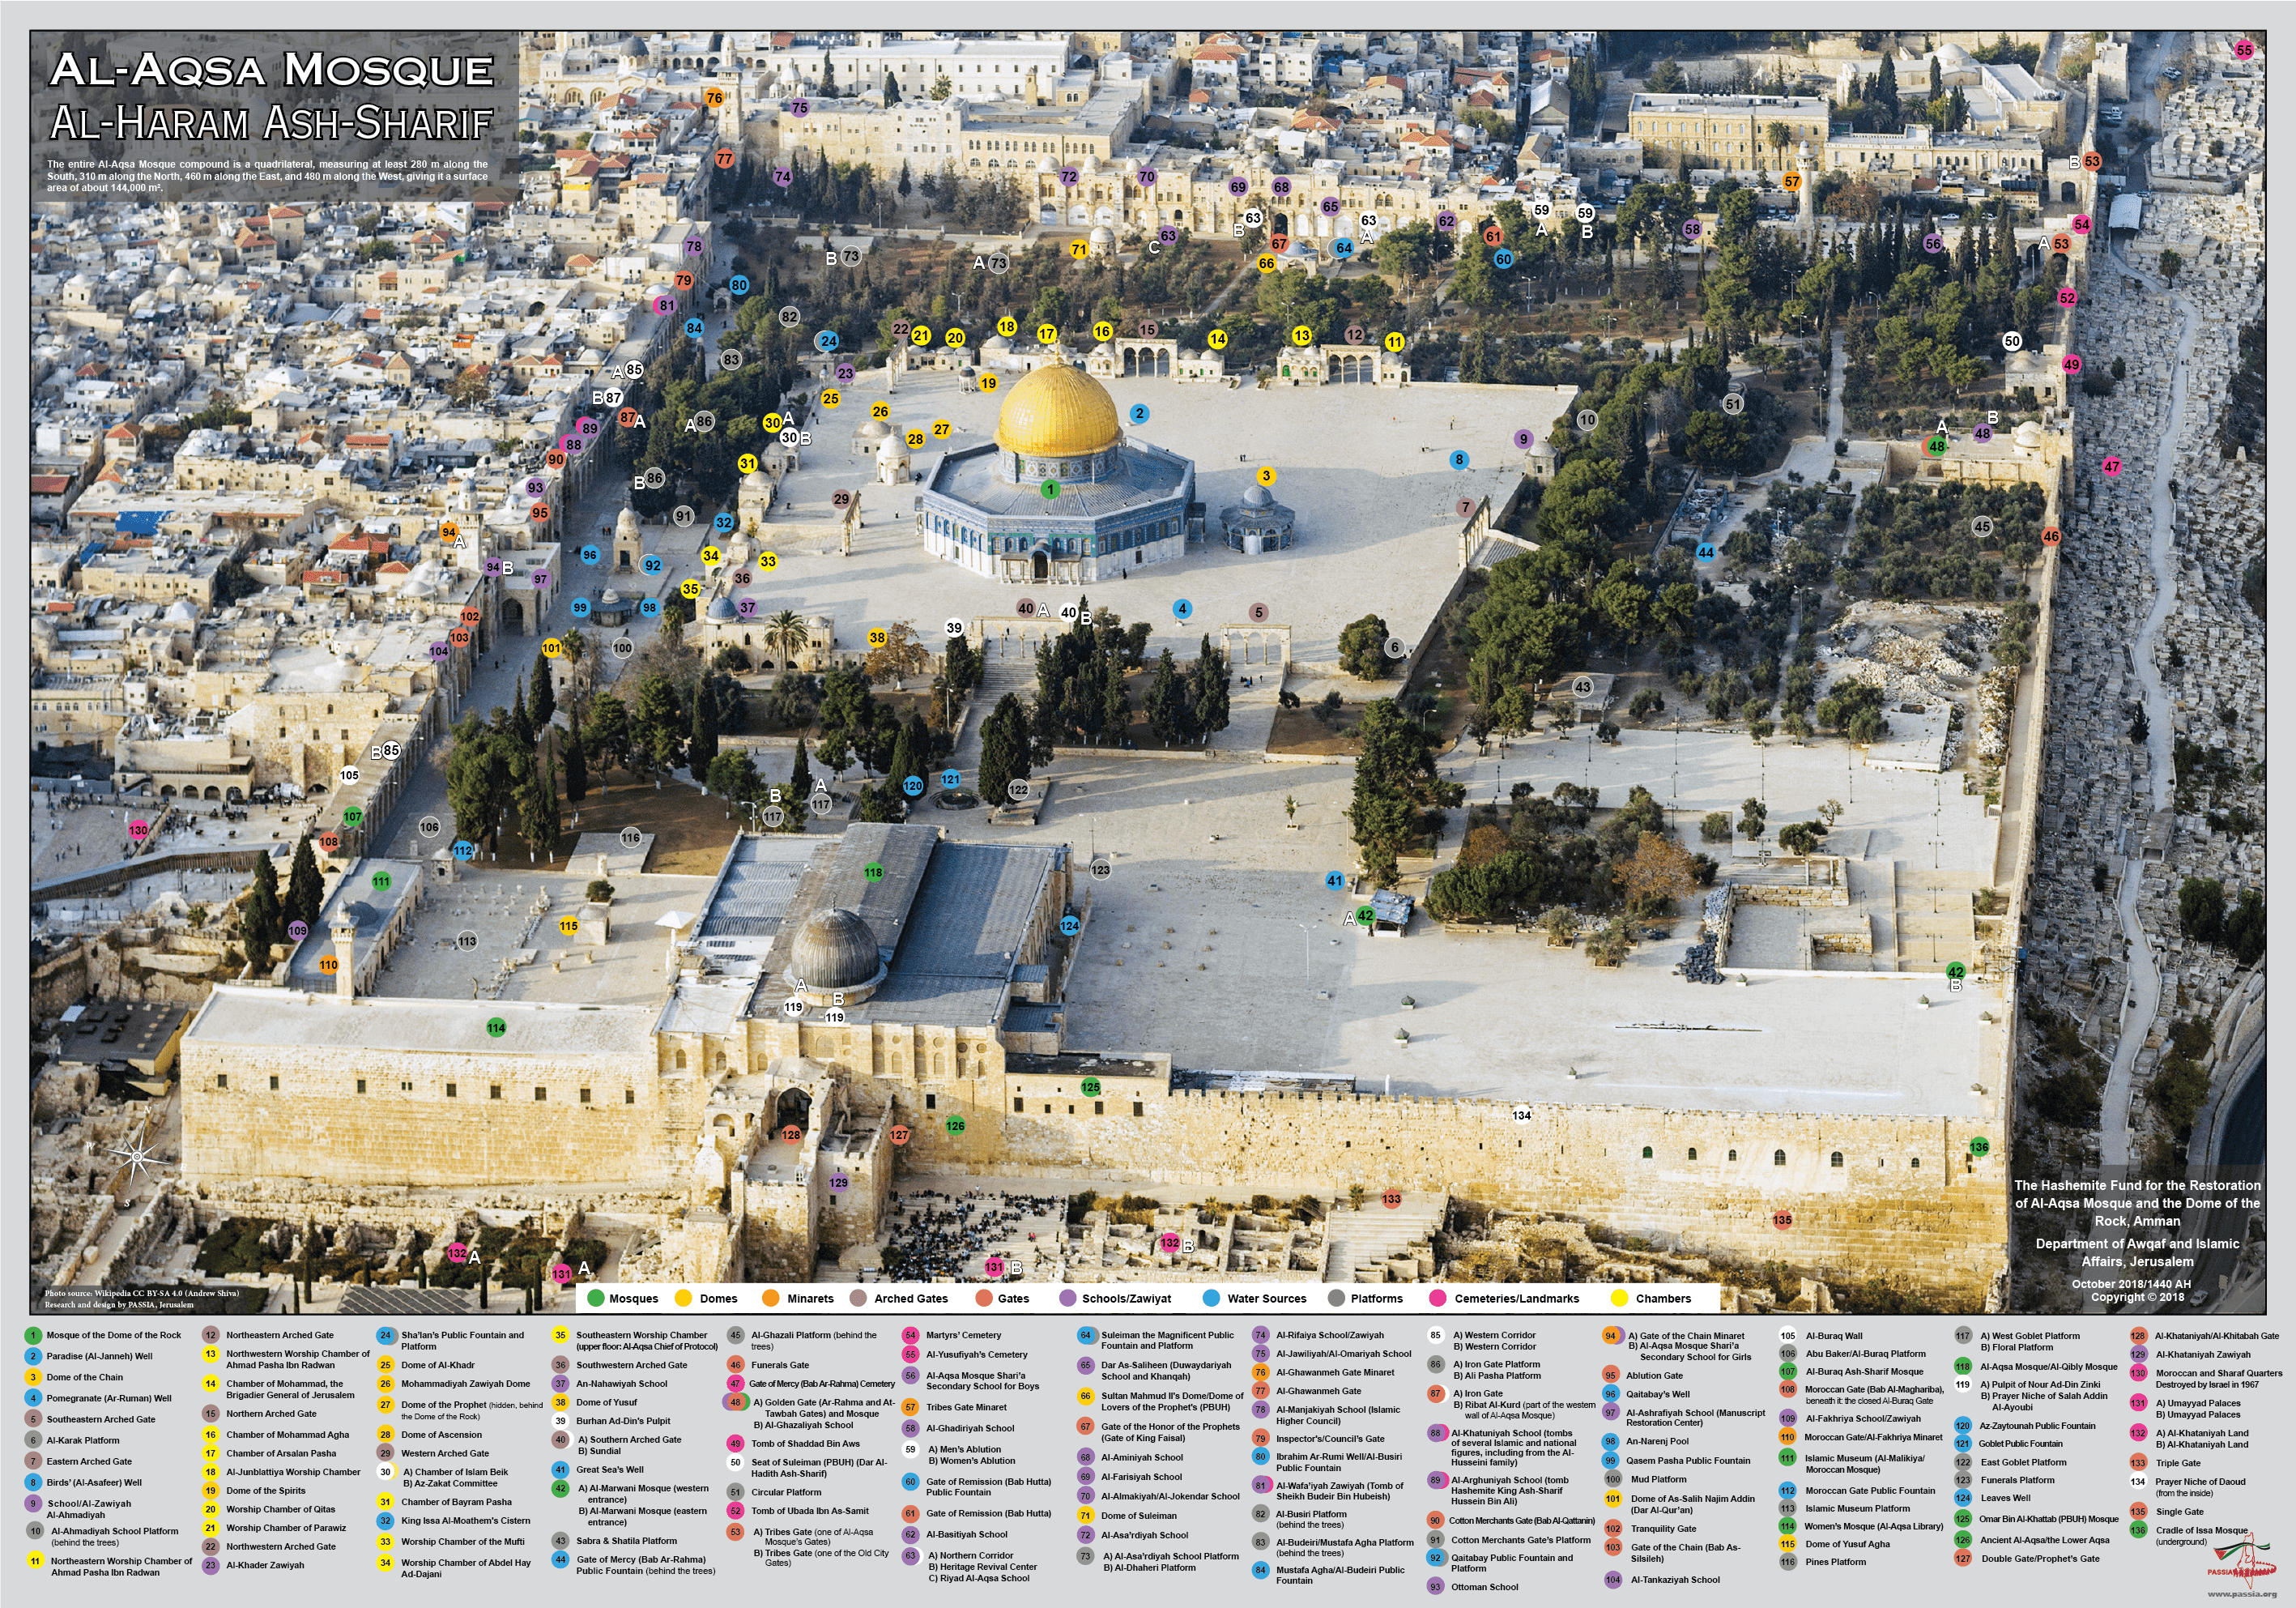 About the Dome of the Rock & Masjid  Al-Aqsa